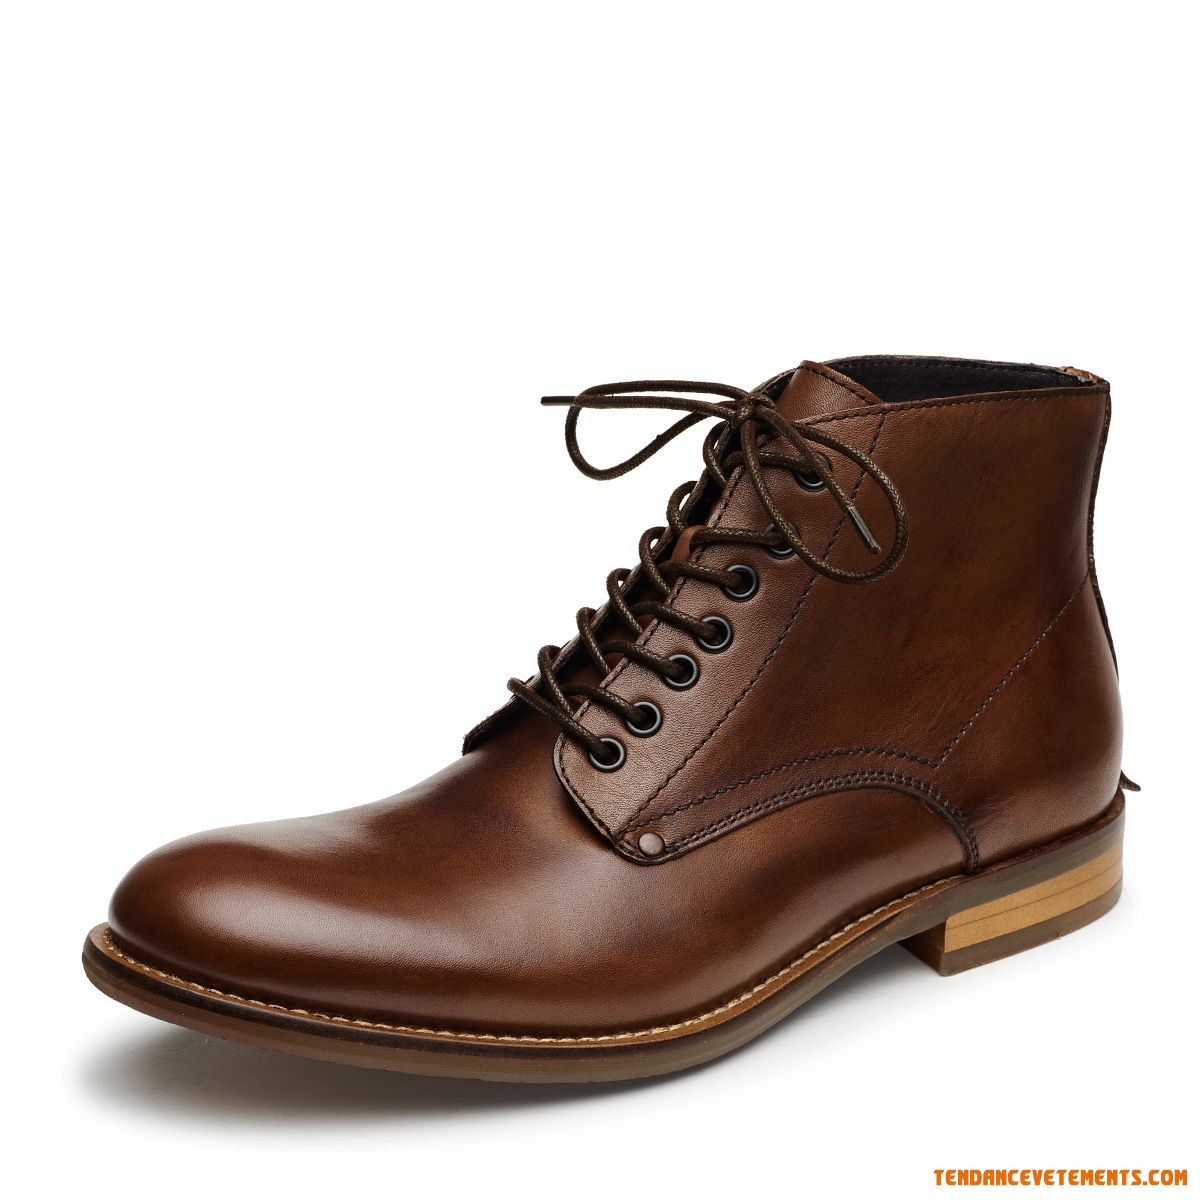 soldes chaussures homme, acheter chaussures pas cher homme - page 12